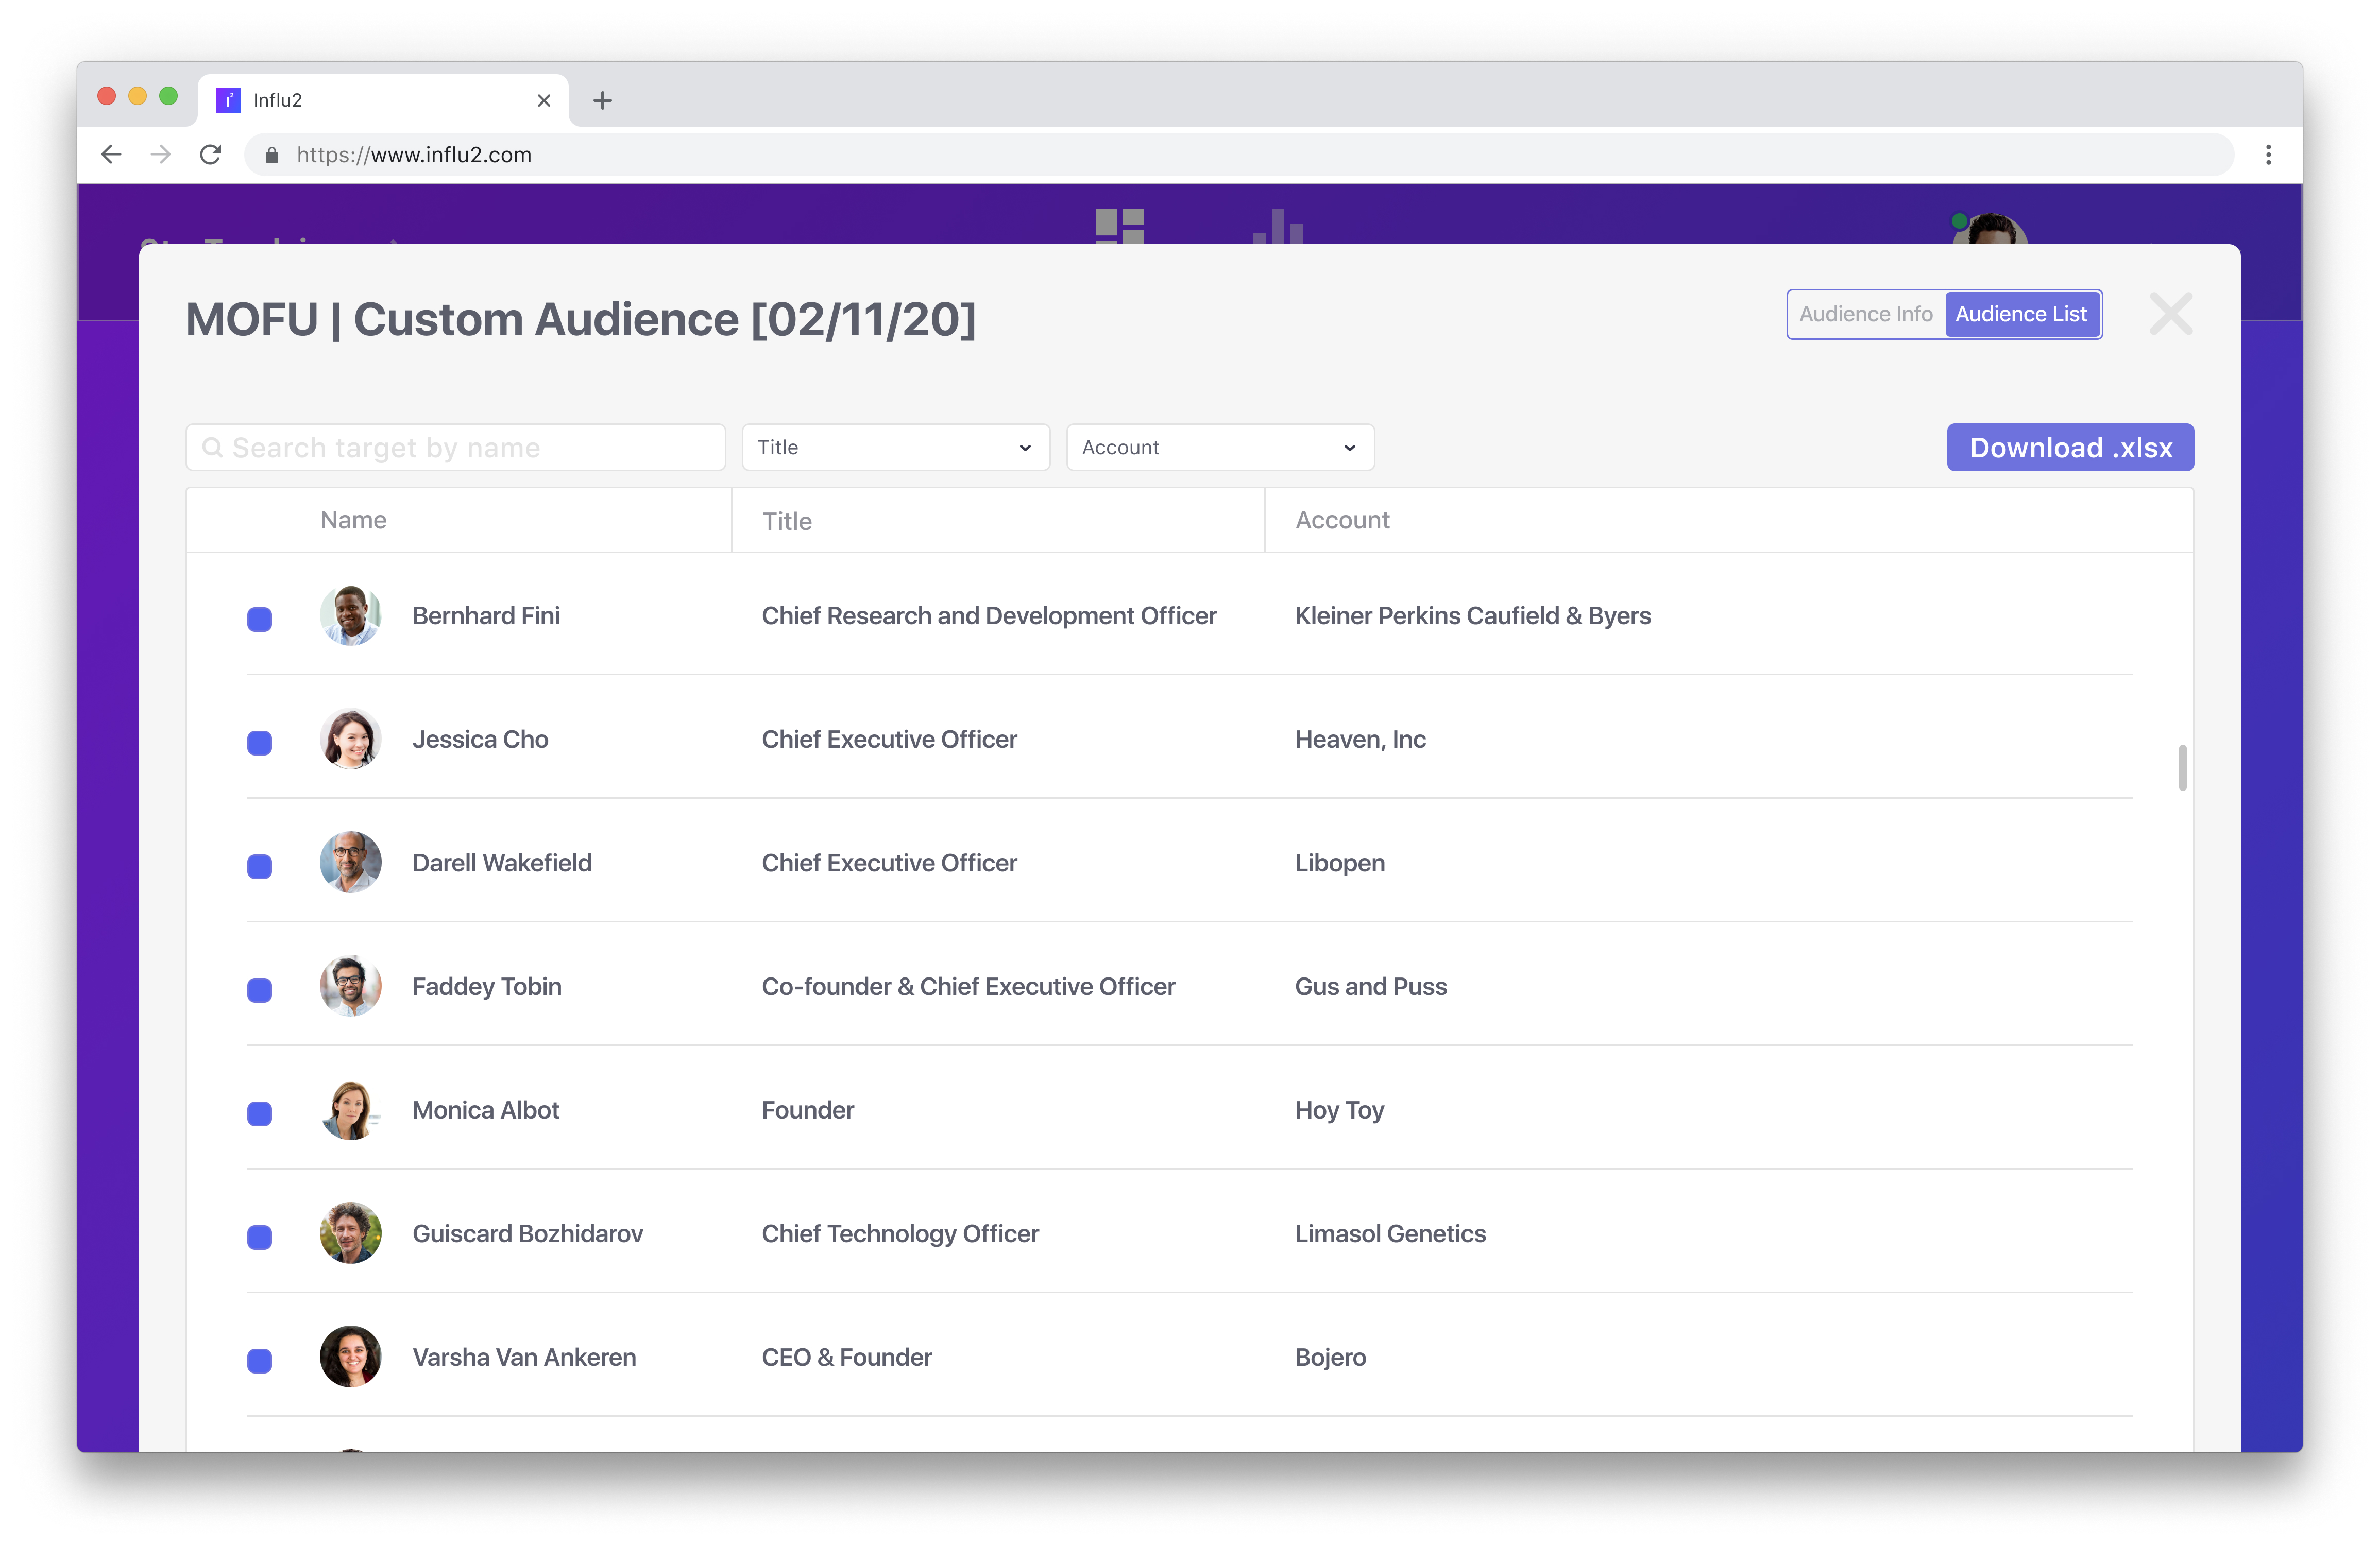 Review your audience. View your list and apply any edits as needed.